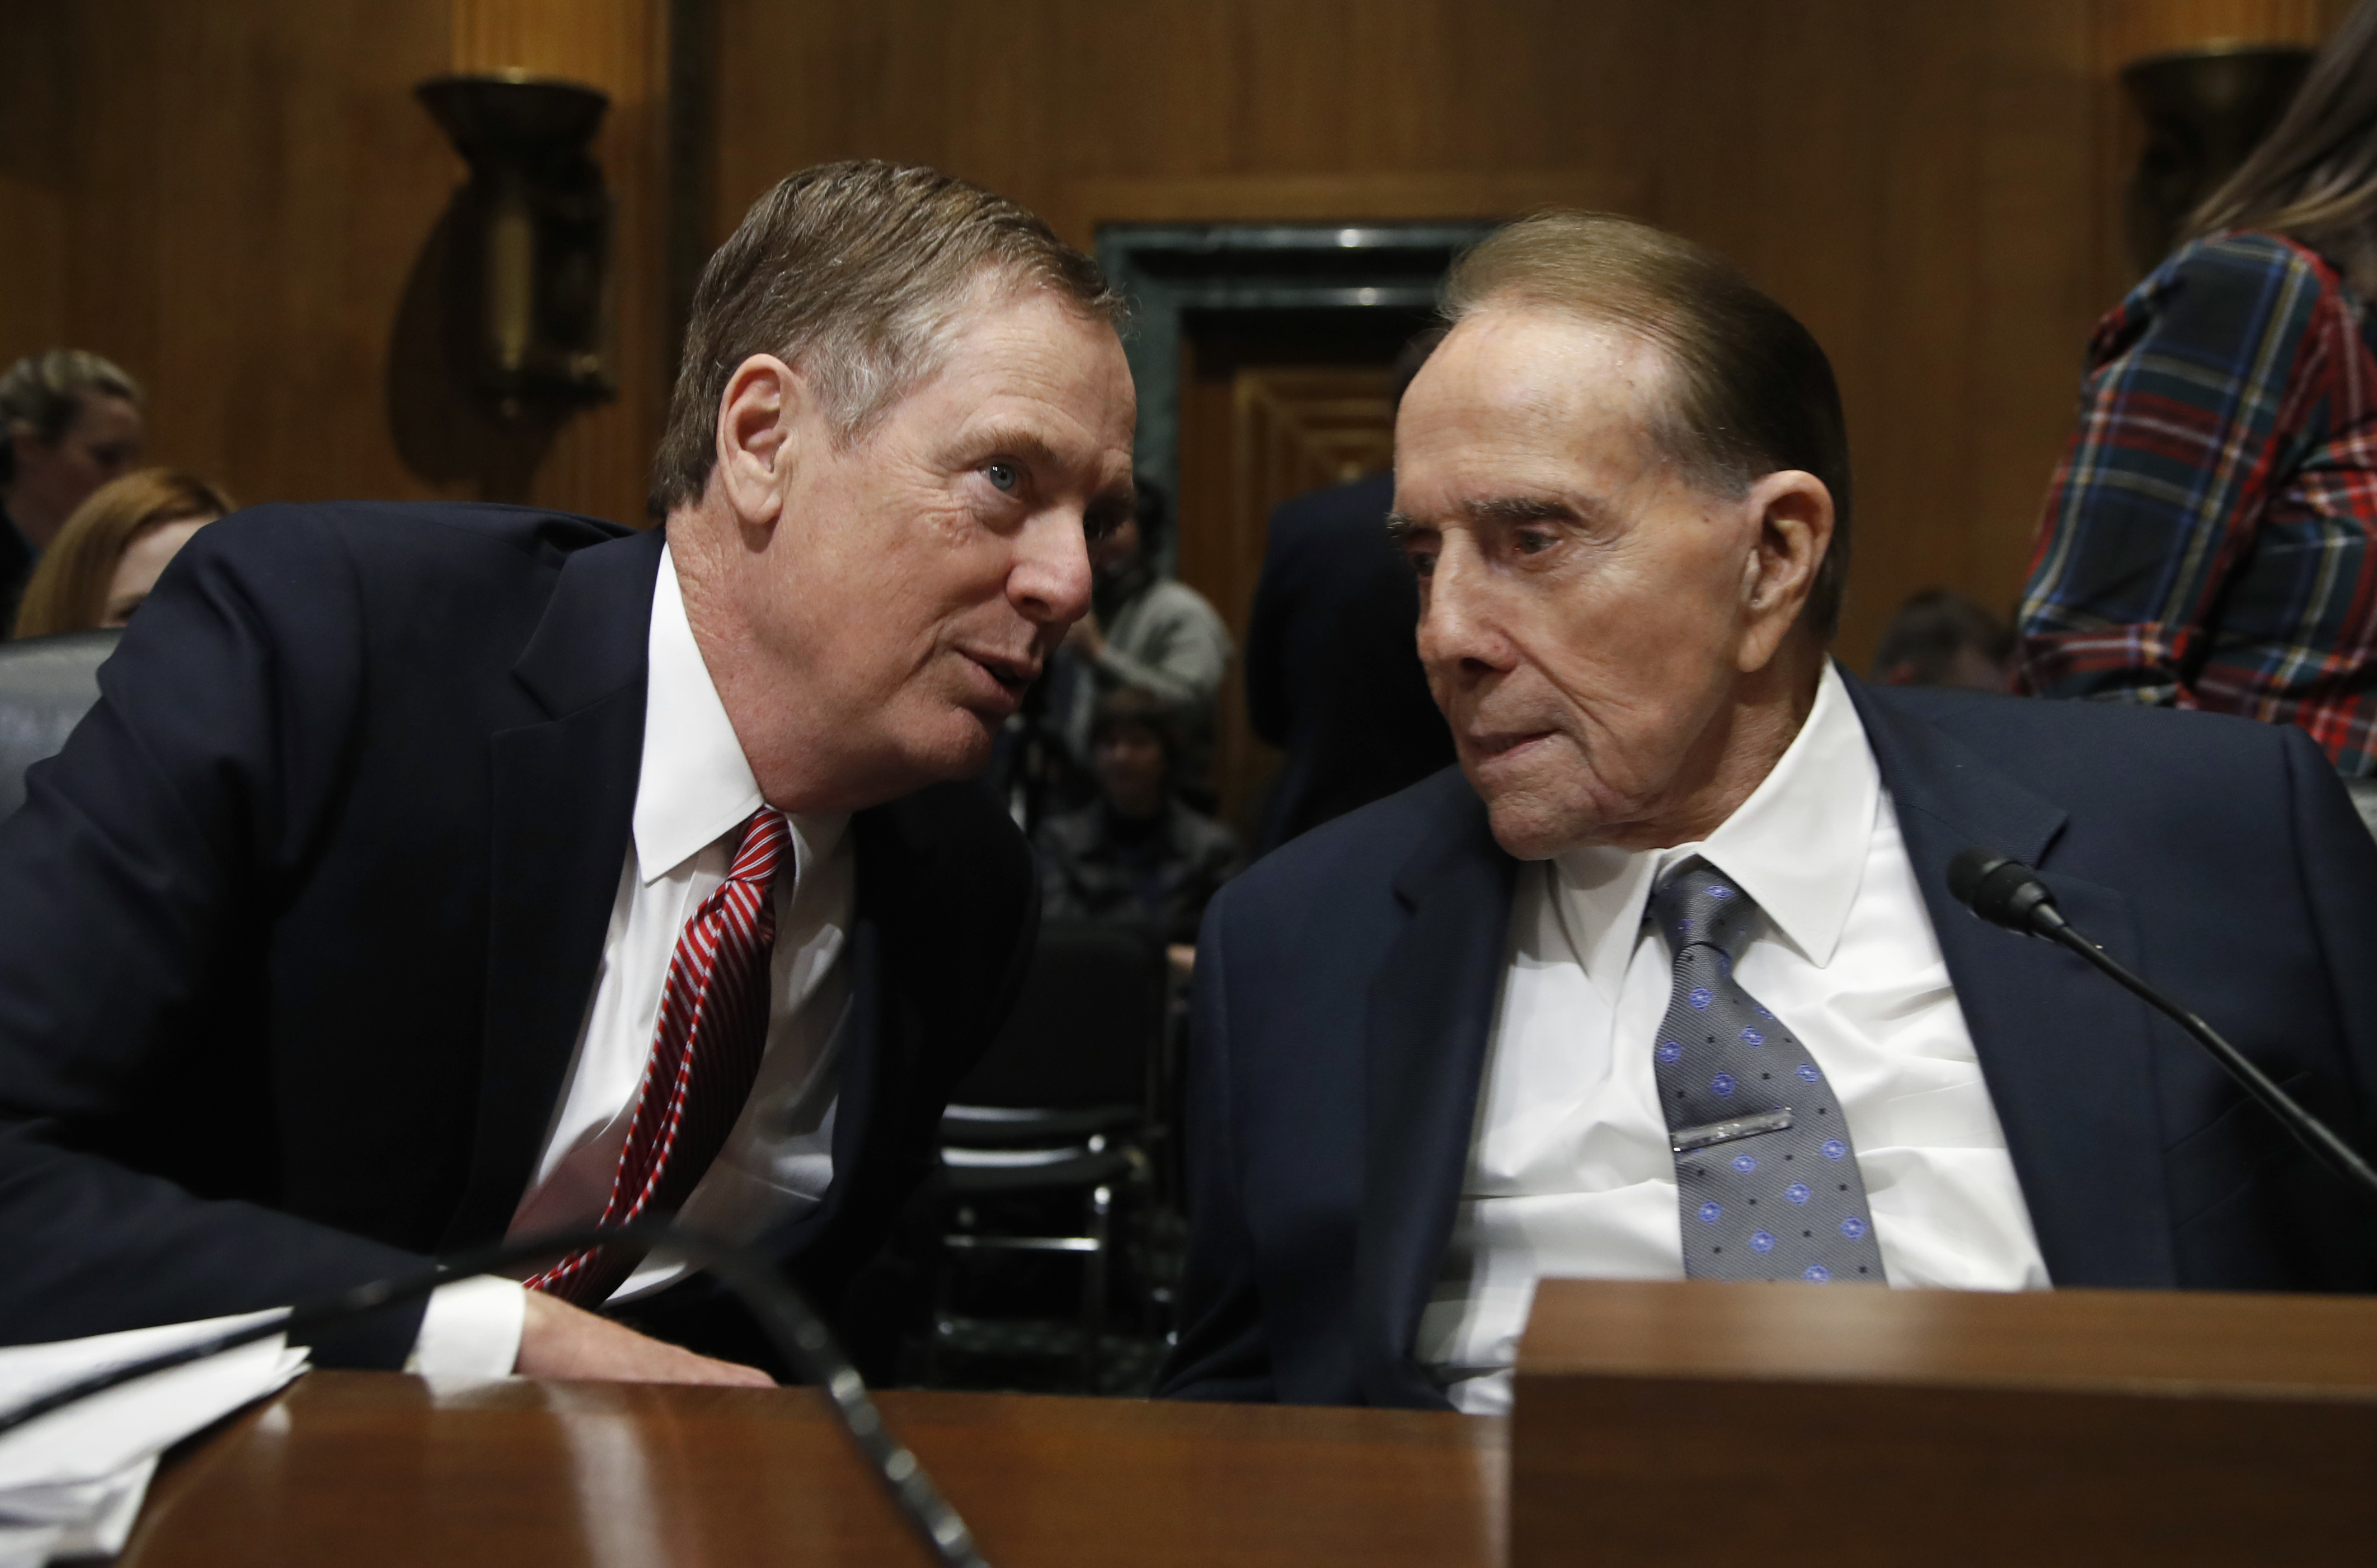 "Trump Trade Representative-1 United States Trade Representative-nominee Robert Lighthizer, left, talks to former Sen Bob Dole, R-Kan., during his confirmation hearing on Capitol Hill in Washington, Tuesday, March 14, 2017. President Donald Trump's pick to represent the country in trade negotiations says the U.S. should have an ""America first trade policy."" (AP Photo/Manuel Balce Ceneta)"